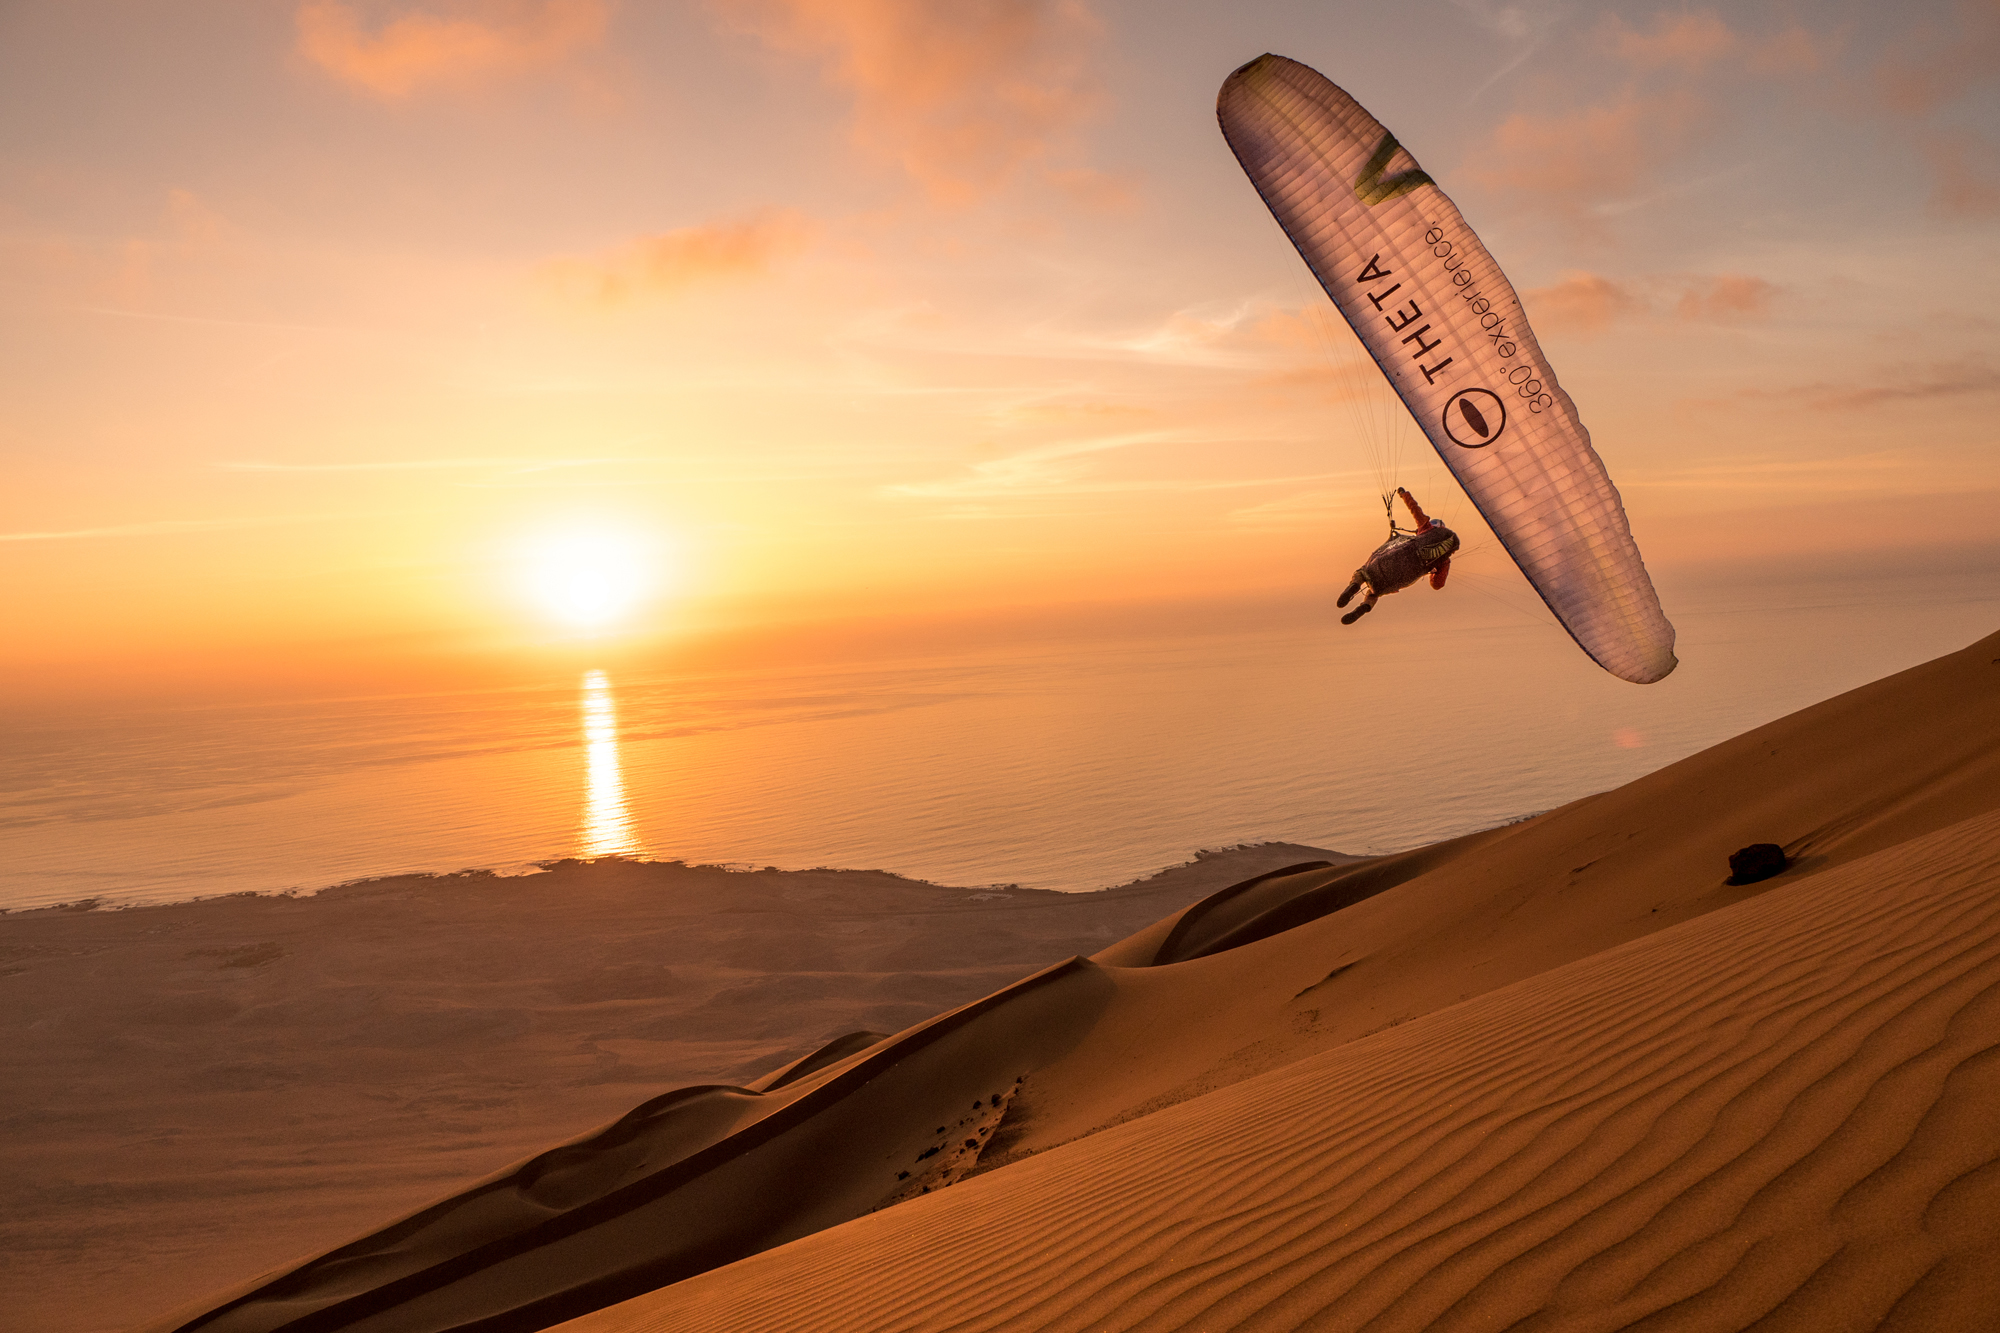 Dune mistique Francois ragolski Theta V Ricoh Skywalk Syride supair Picture by Alex Aimard-71